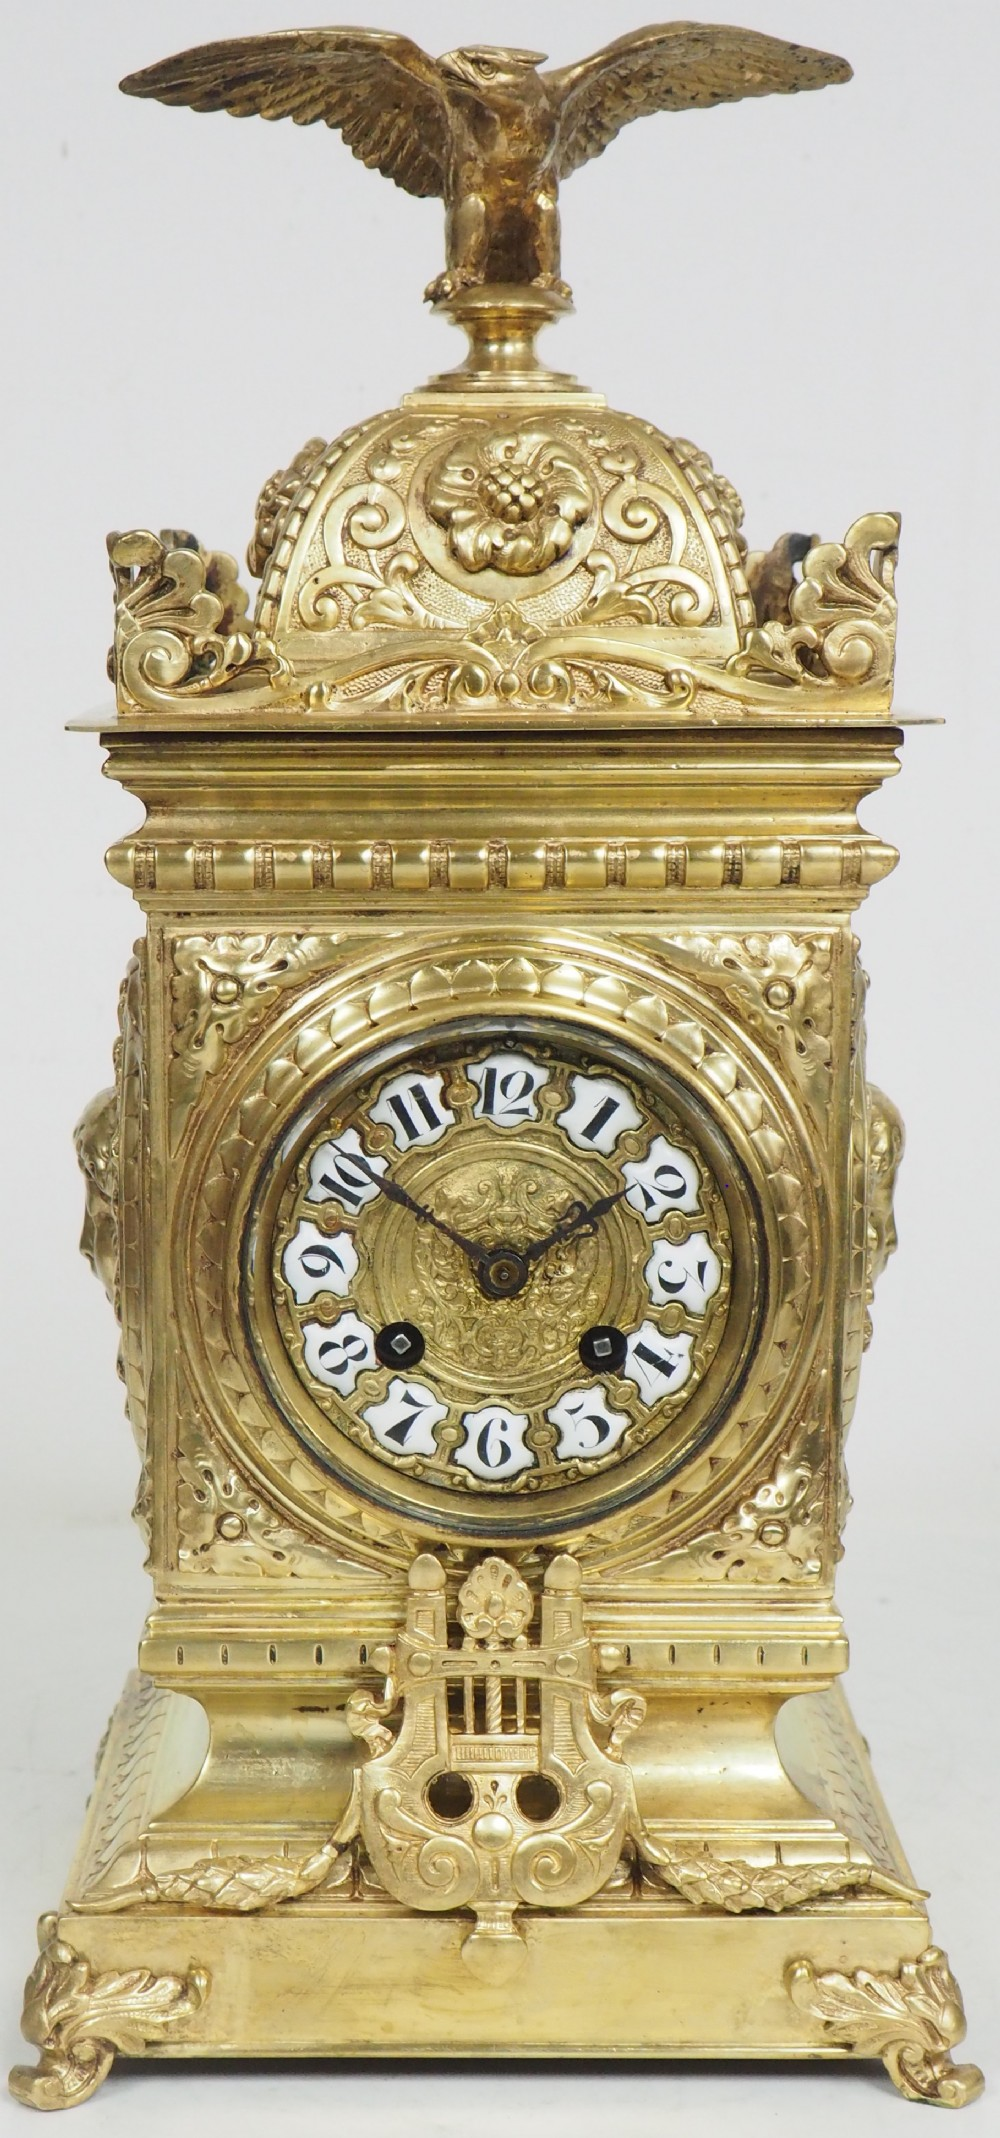 antique french ormolu cubed mantel clock embossed decoration eagle finial 8 day striking